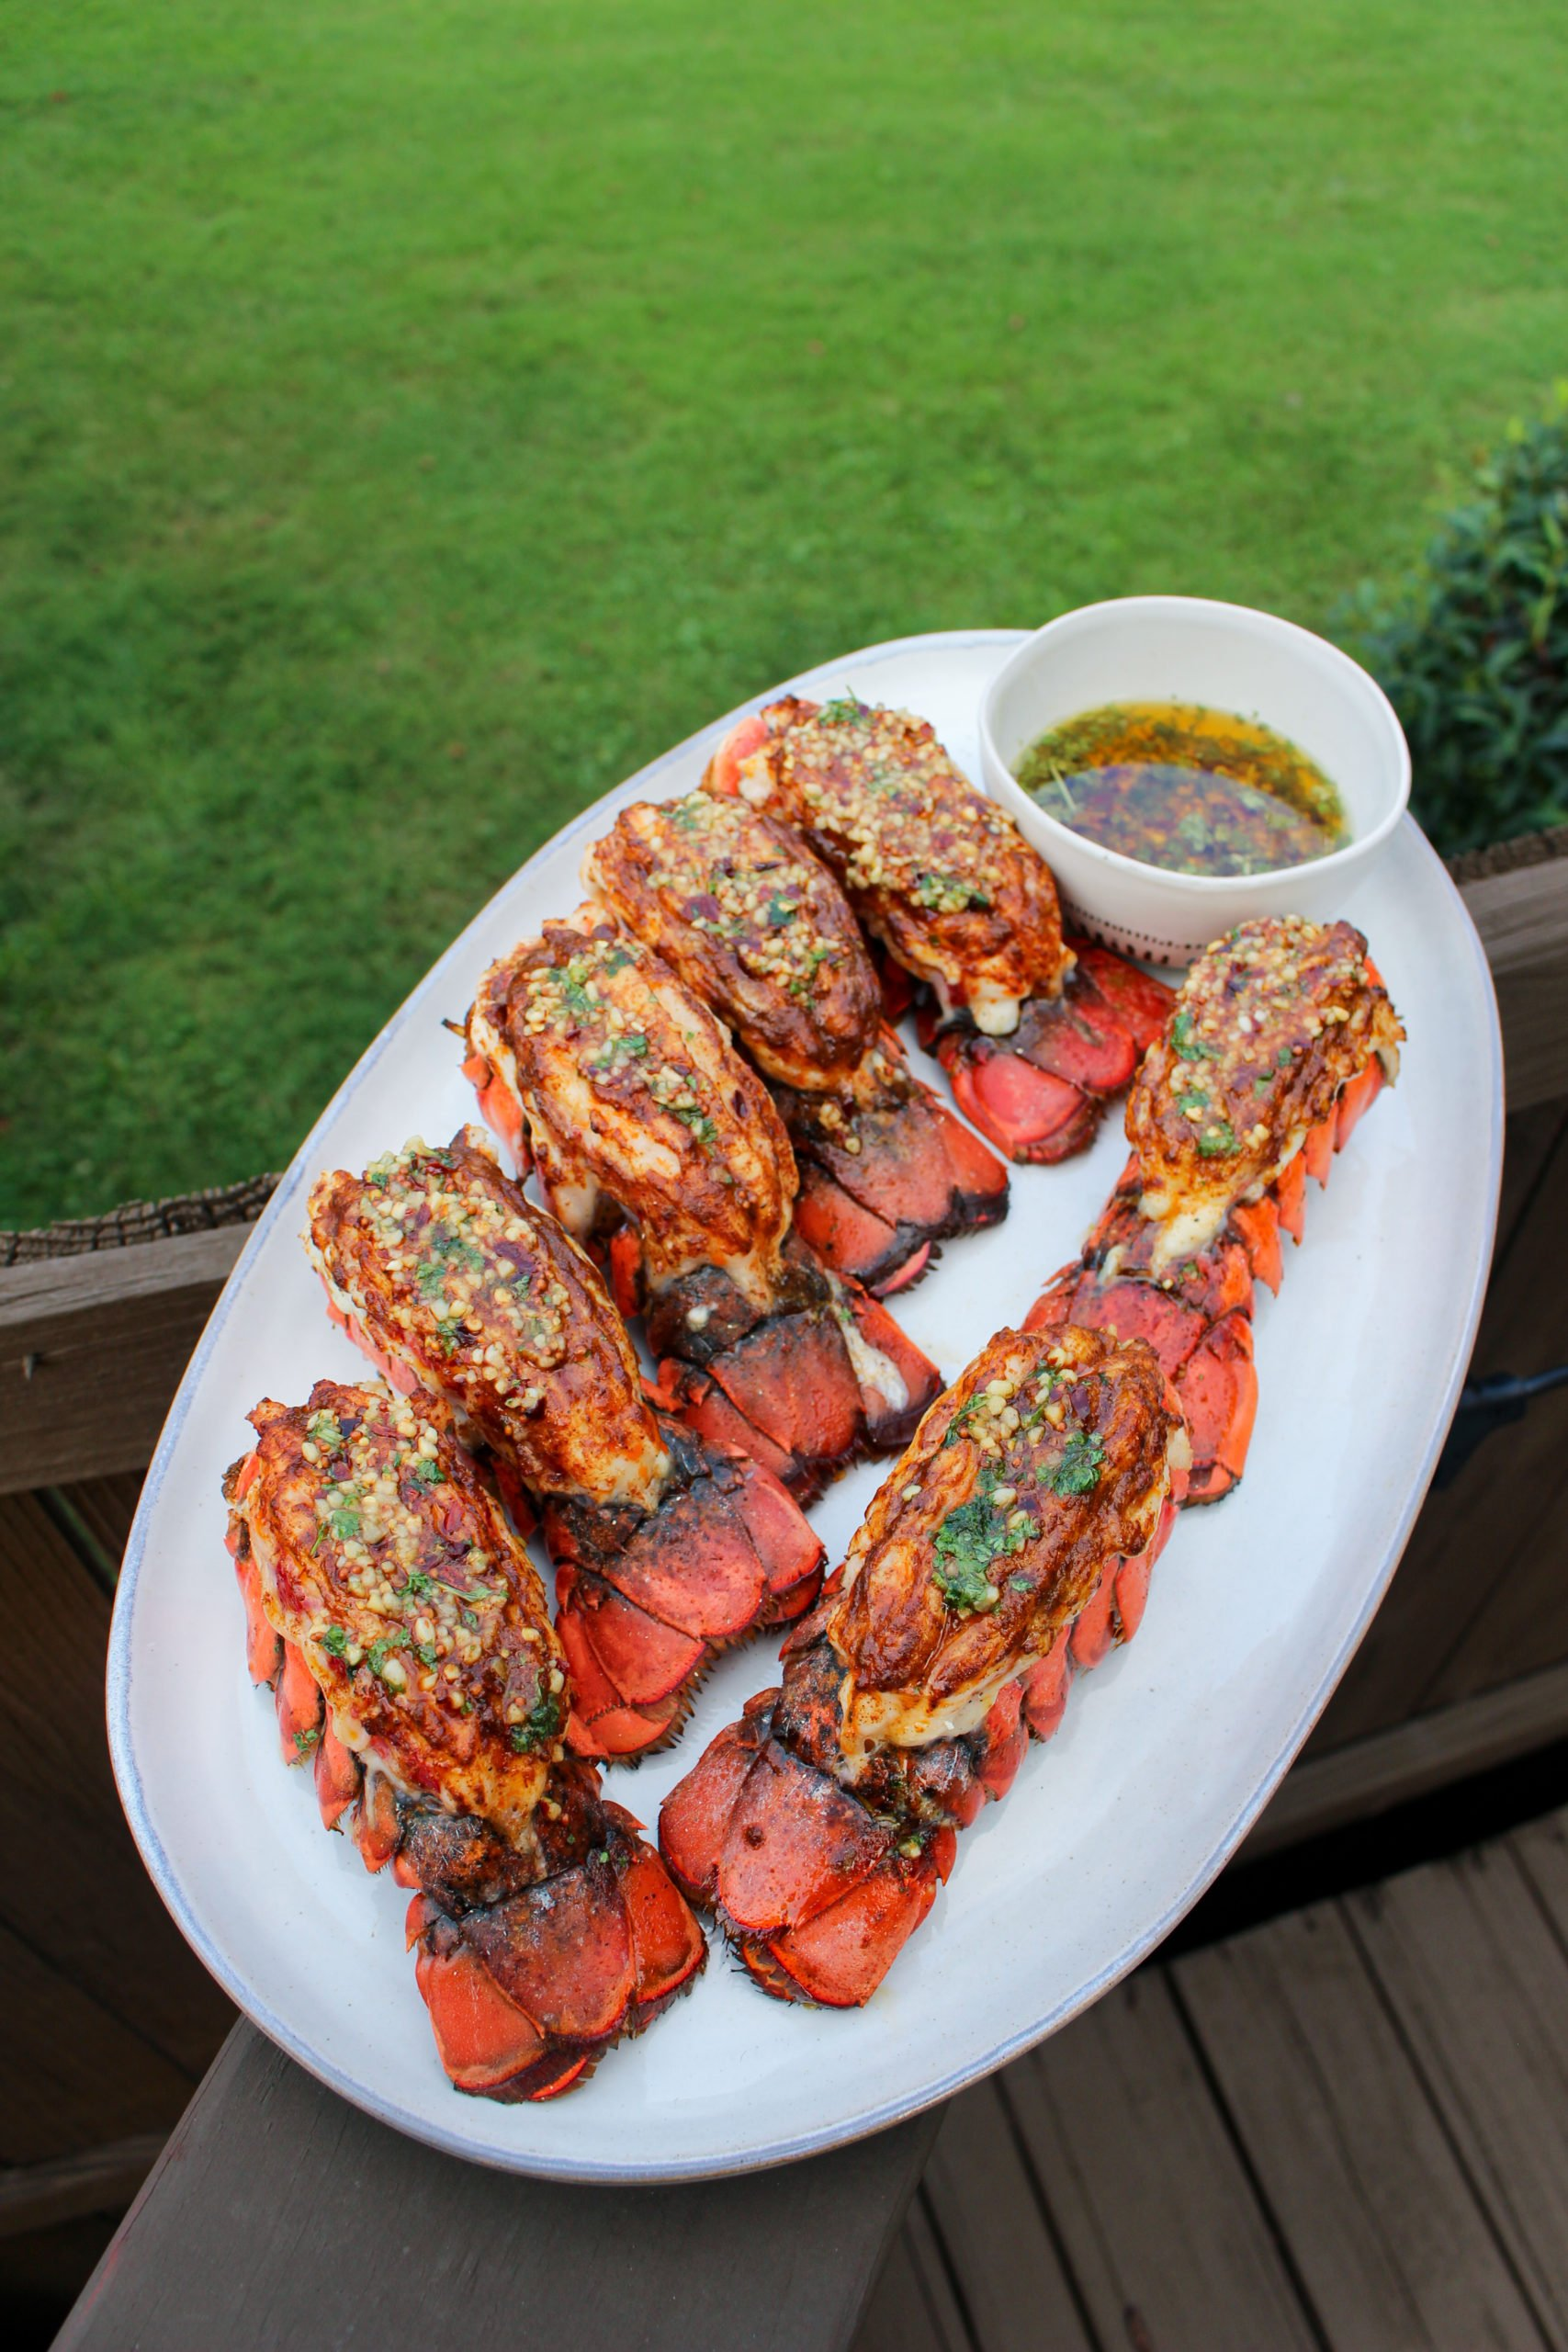 Smoked Lobster Tails with Spicy Garlic Butter